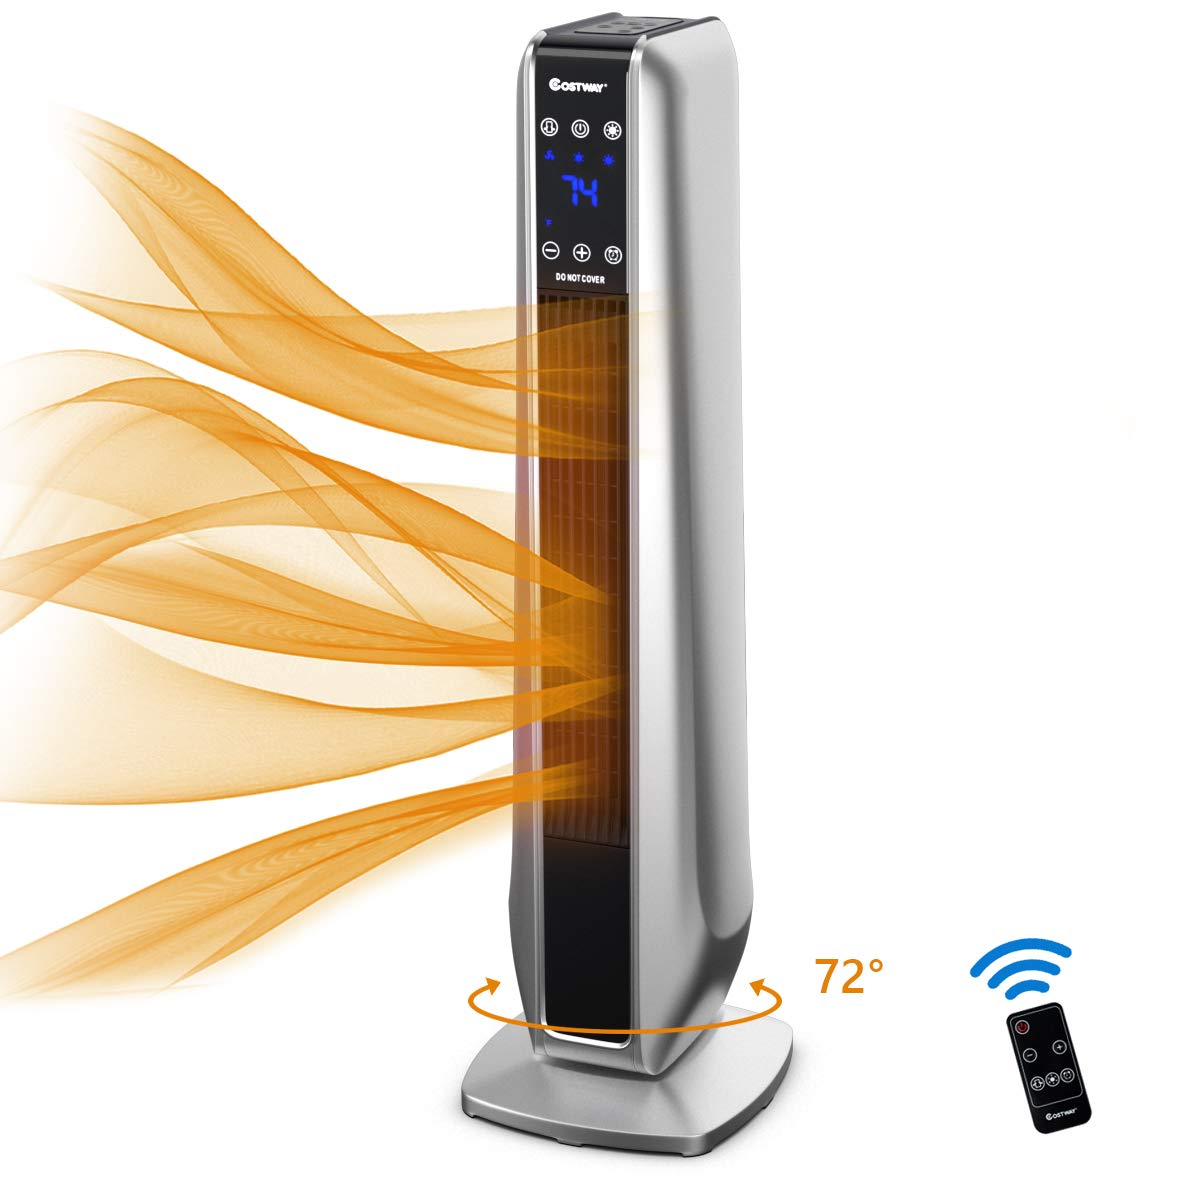 COSTWAY Ceramic Heater, 750W 1500W Electric Tower Heater with 3 Modes, 8H Timer, Remote Control LED Screen, Overheat Tip-Over Protection, Portable Space Heater for Bedroom, Home Office, Silver